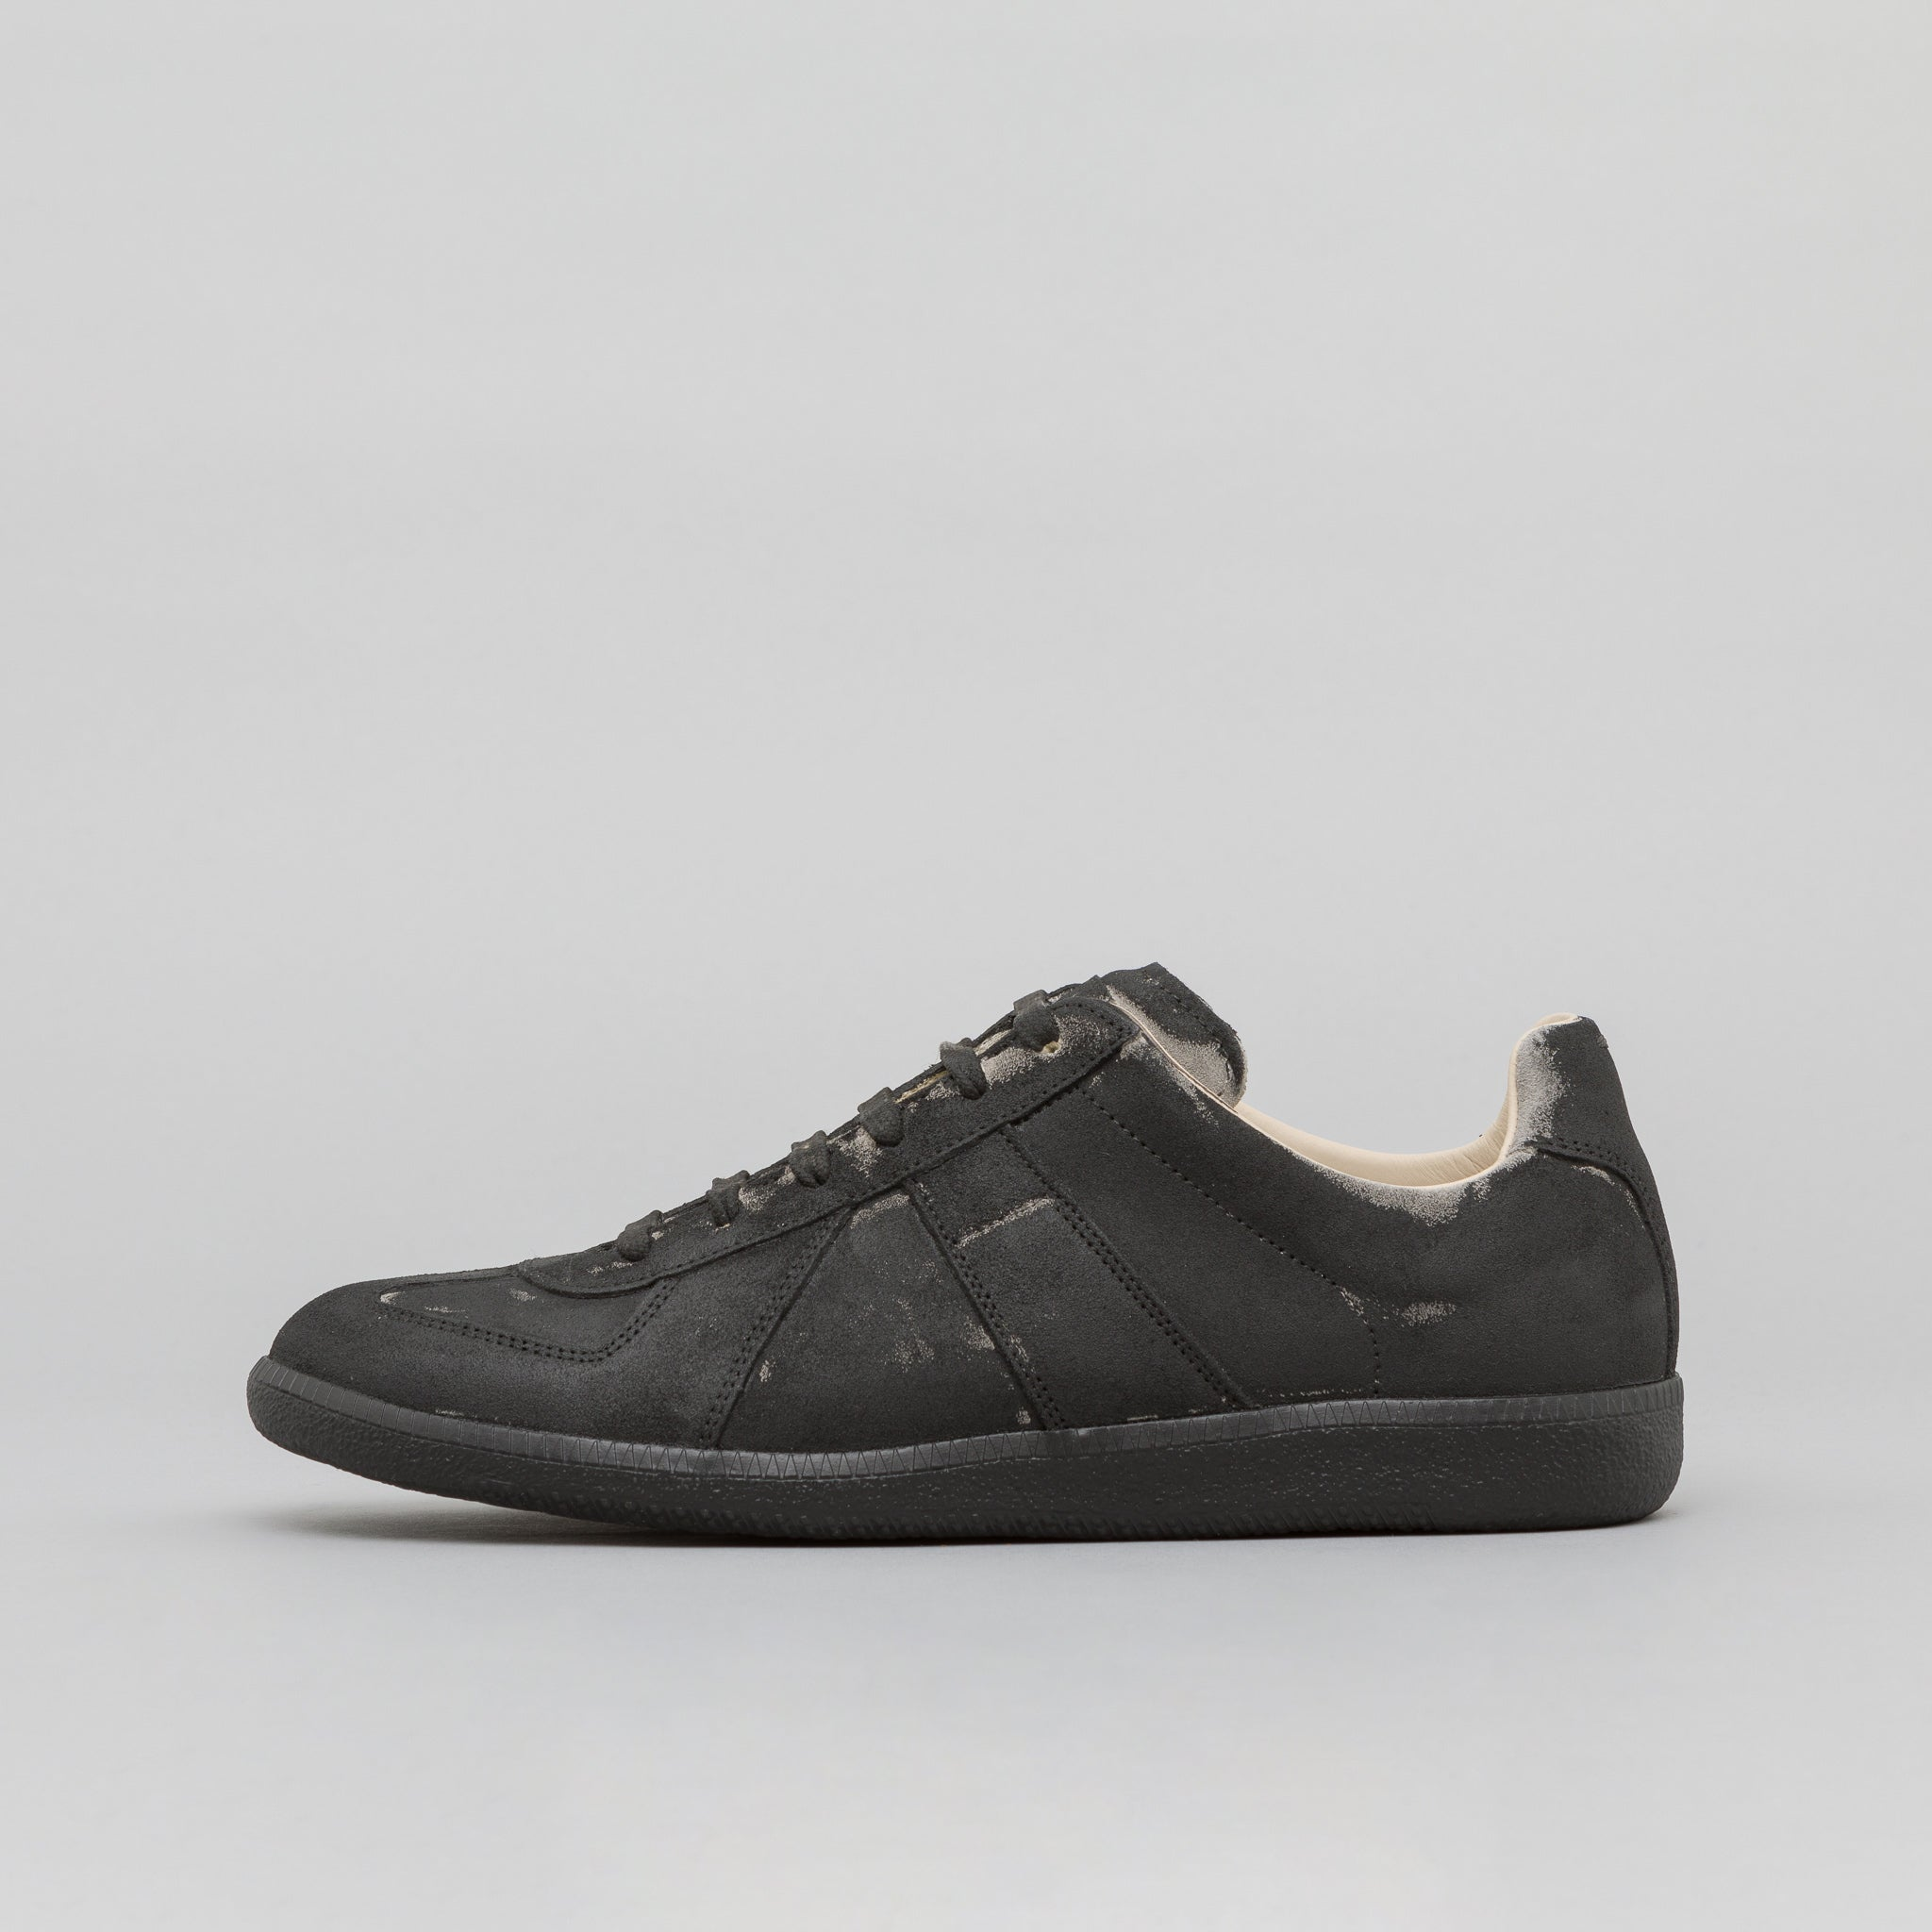 Replica Sneaker in Painted Black Leather